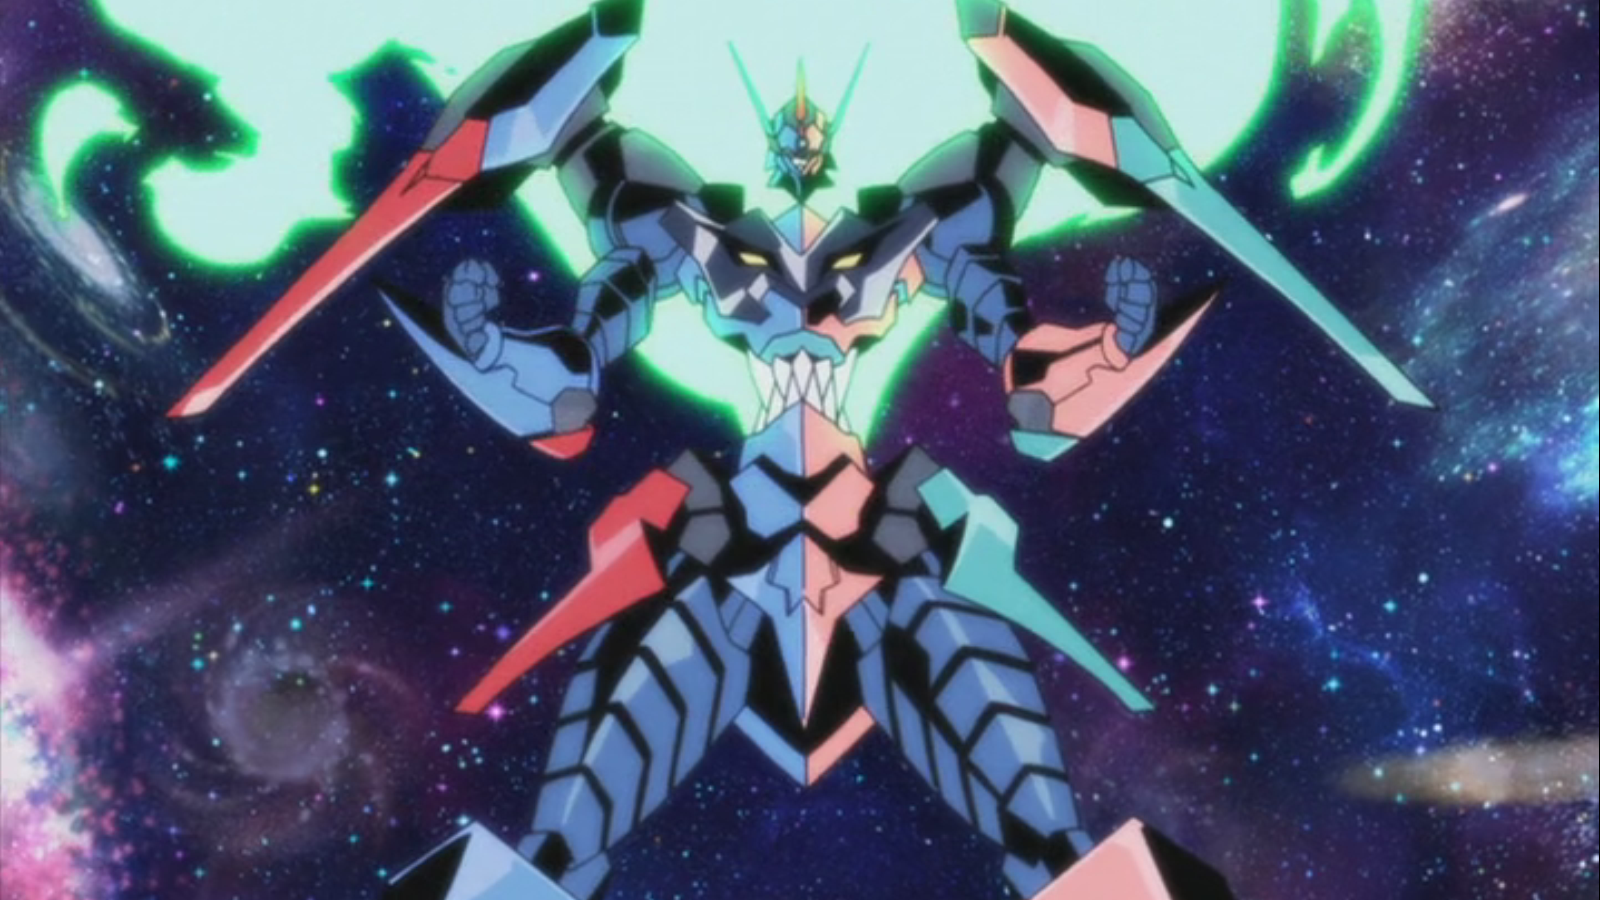 Gurren Lagann Grapearl from Gurren Lagann Mecha anime